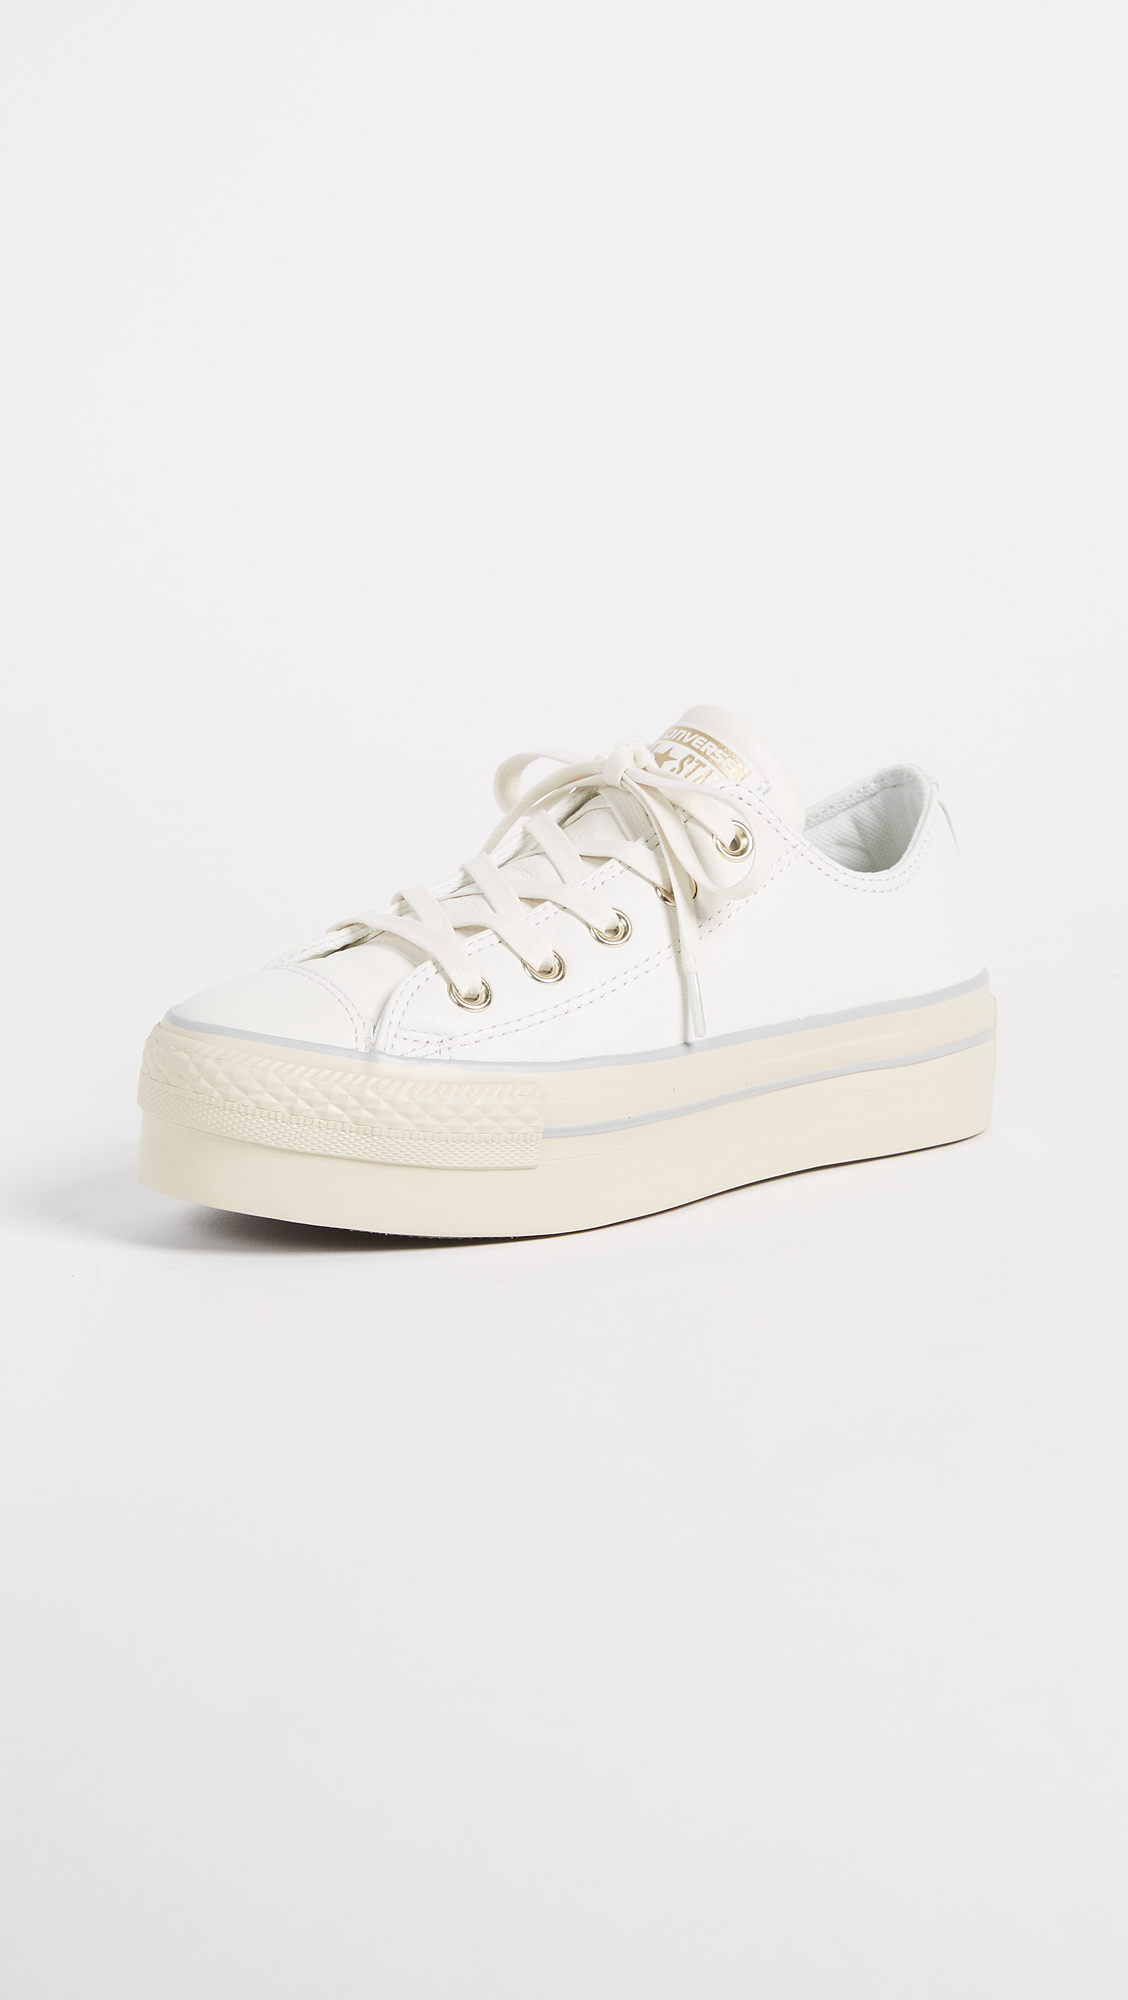 2converse all star platform ox